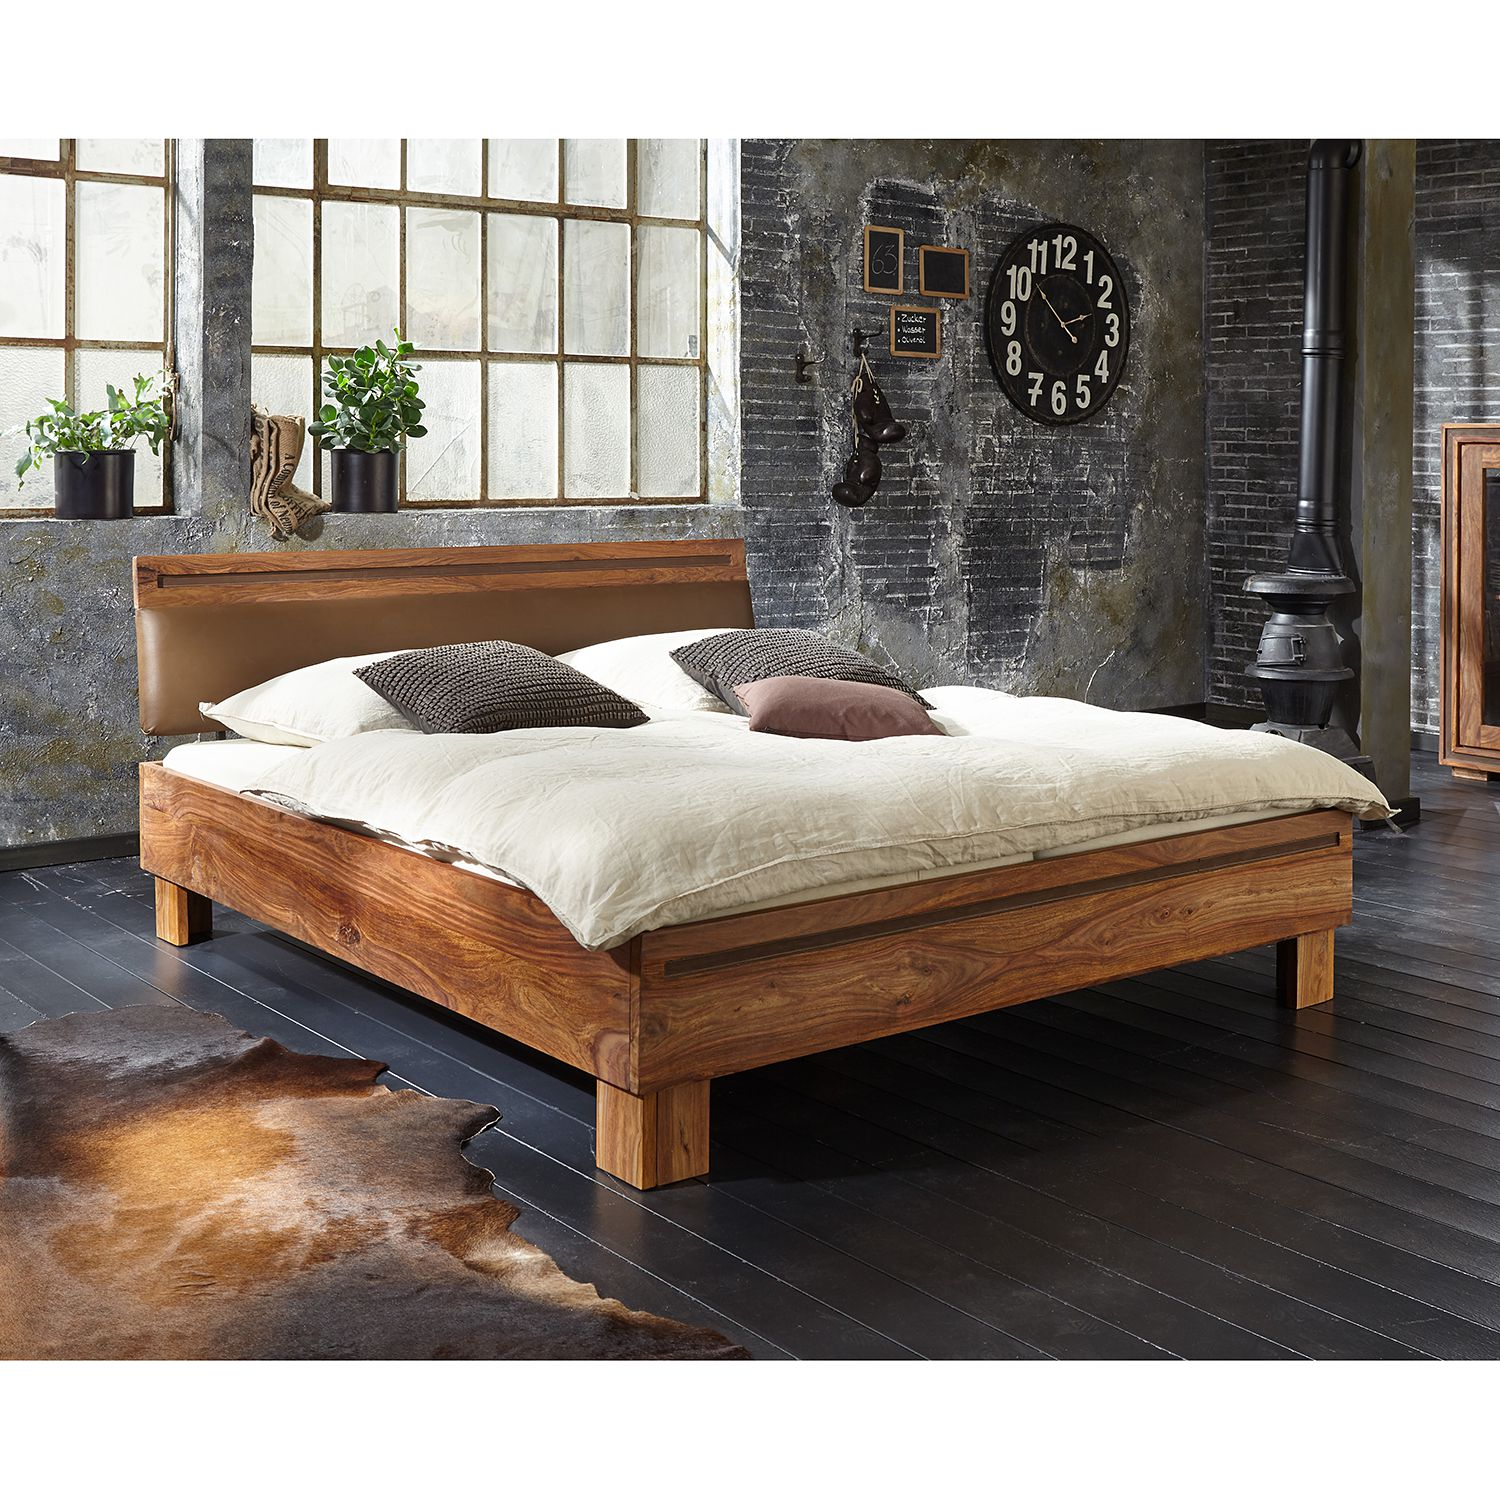 Home24 Massief houten bed Shan, Wolf-Moebel